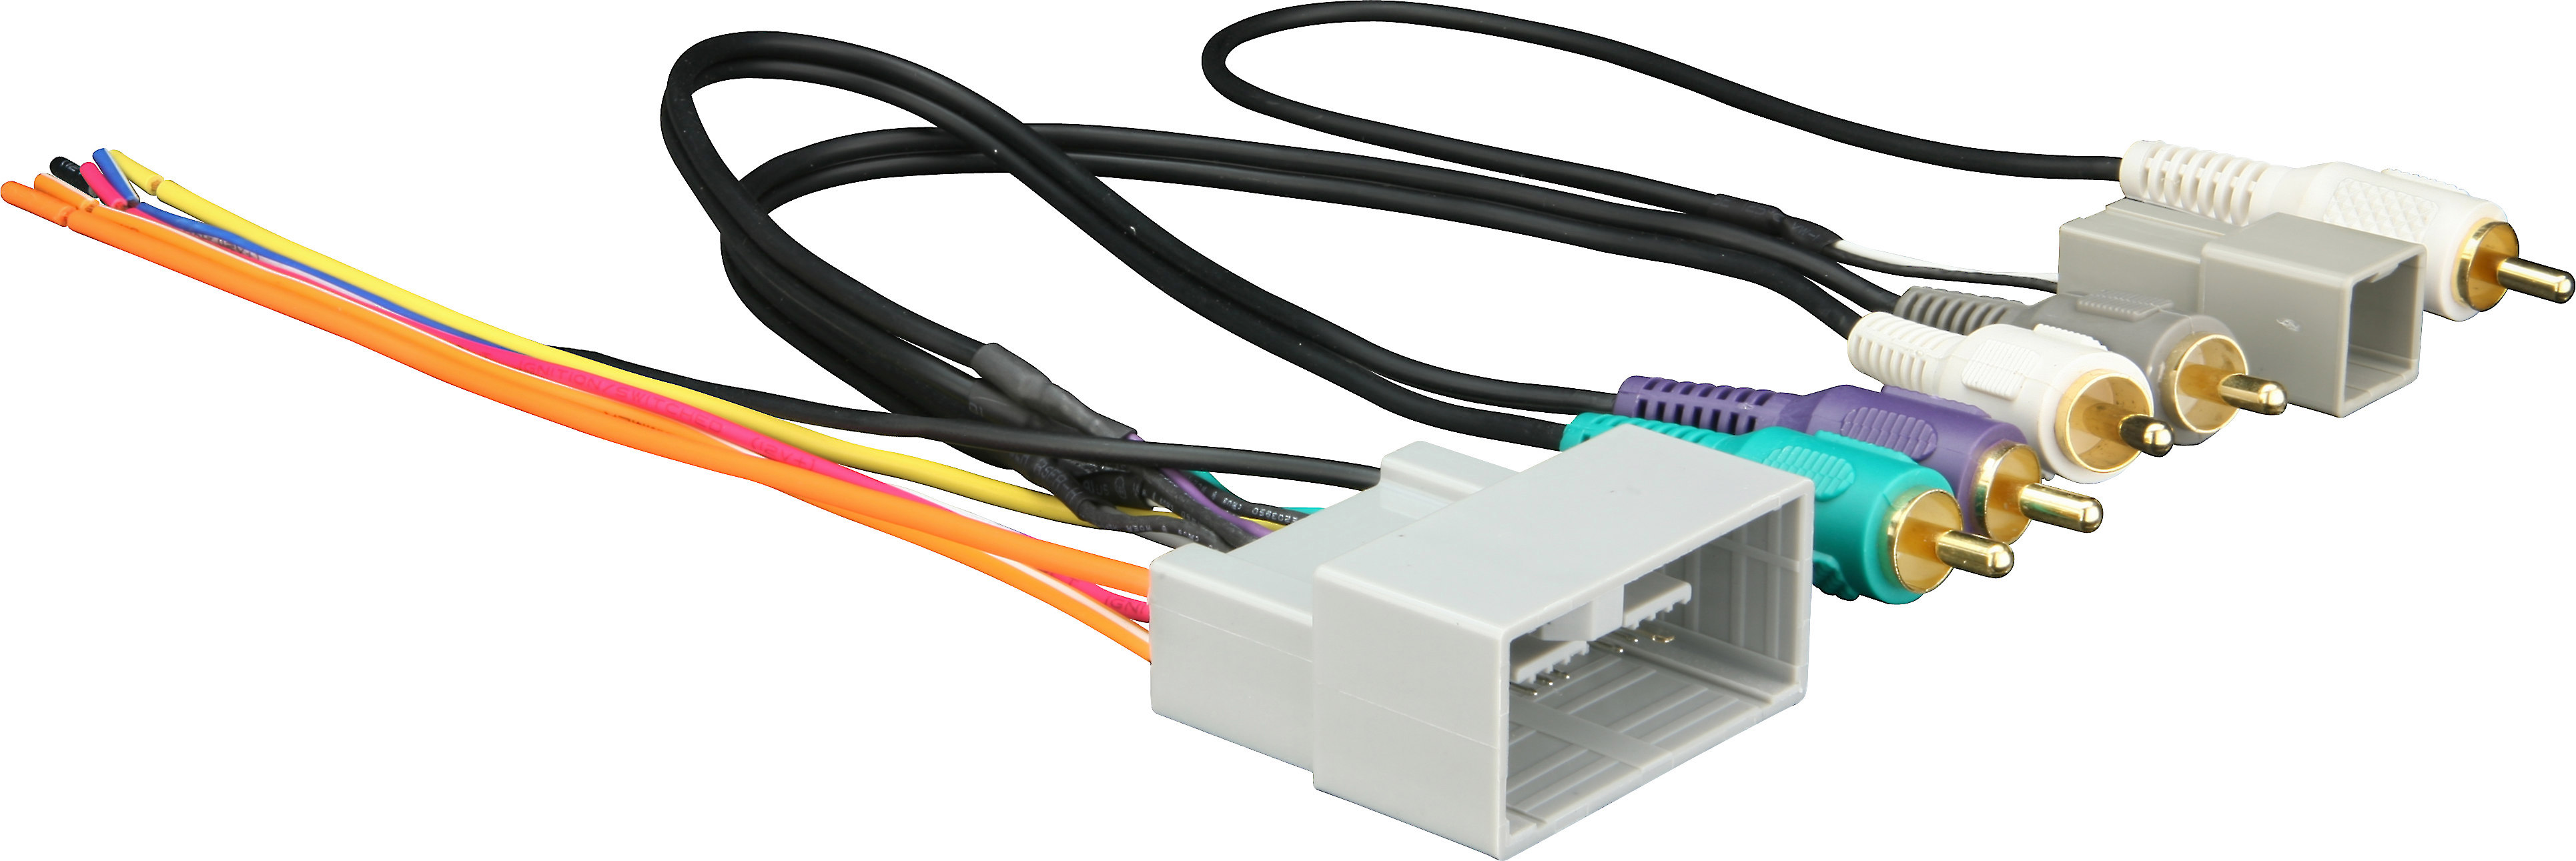 Metra 70-1730 Receiver Wiring Harness Connect a new car stereo in select on vehicle trailer wiring, vehicle specific speakers, vehicle specific seat covers, vehicle wiring hardness, vehicle specific wiring harnes jvc kw-r500,